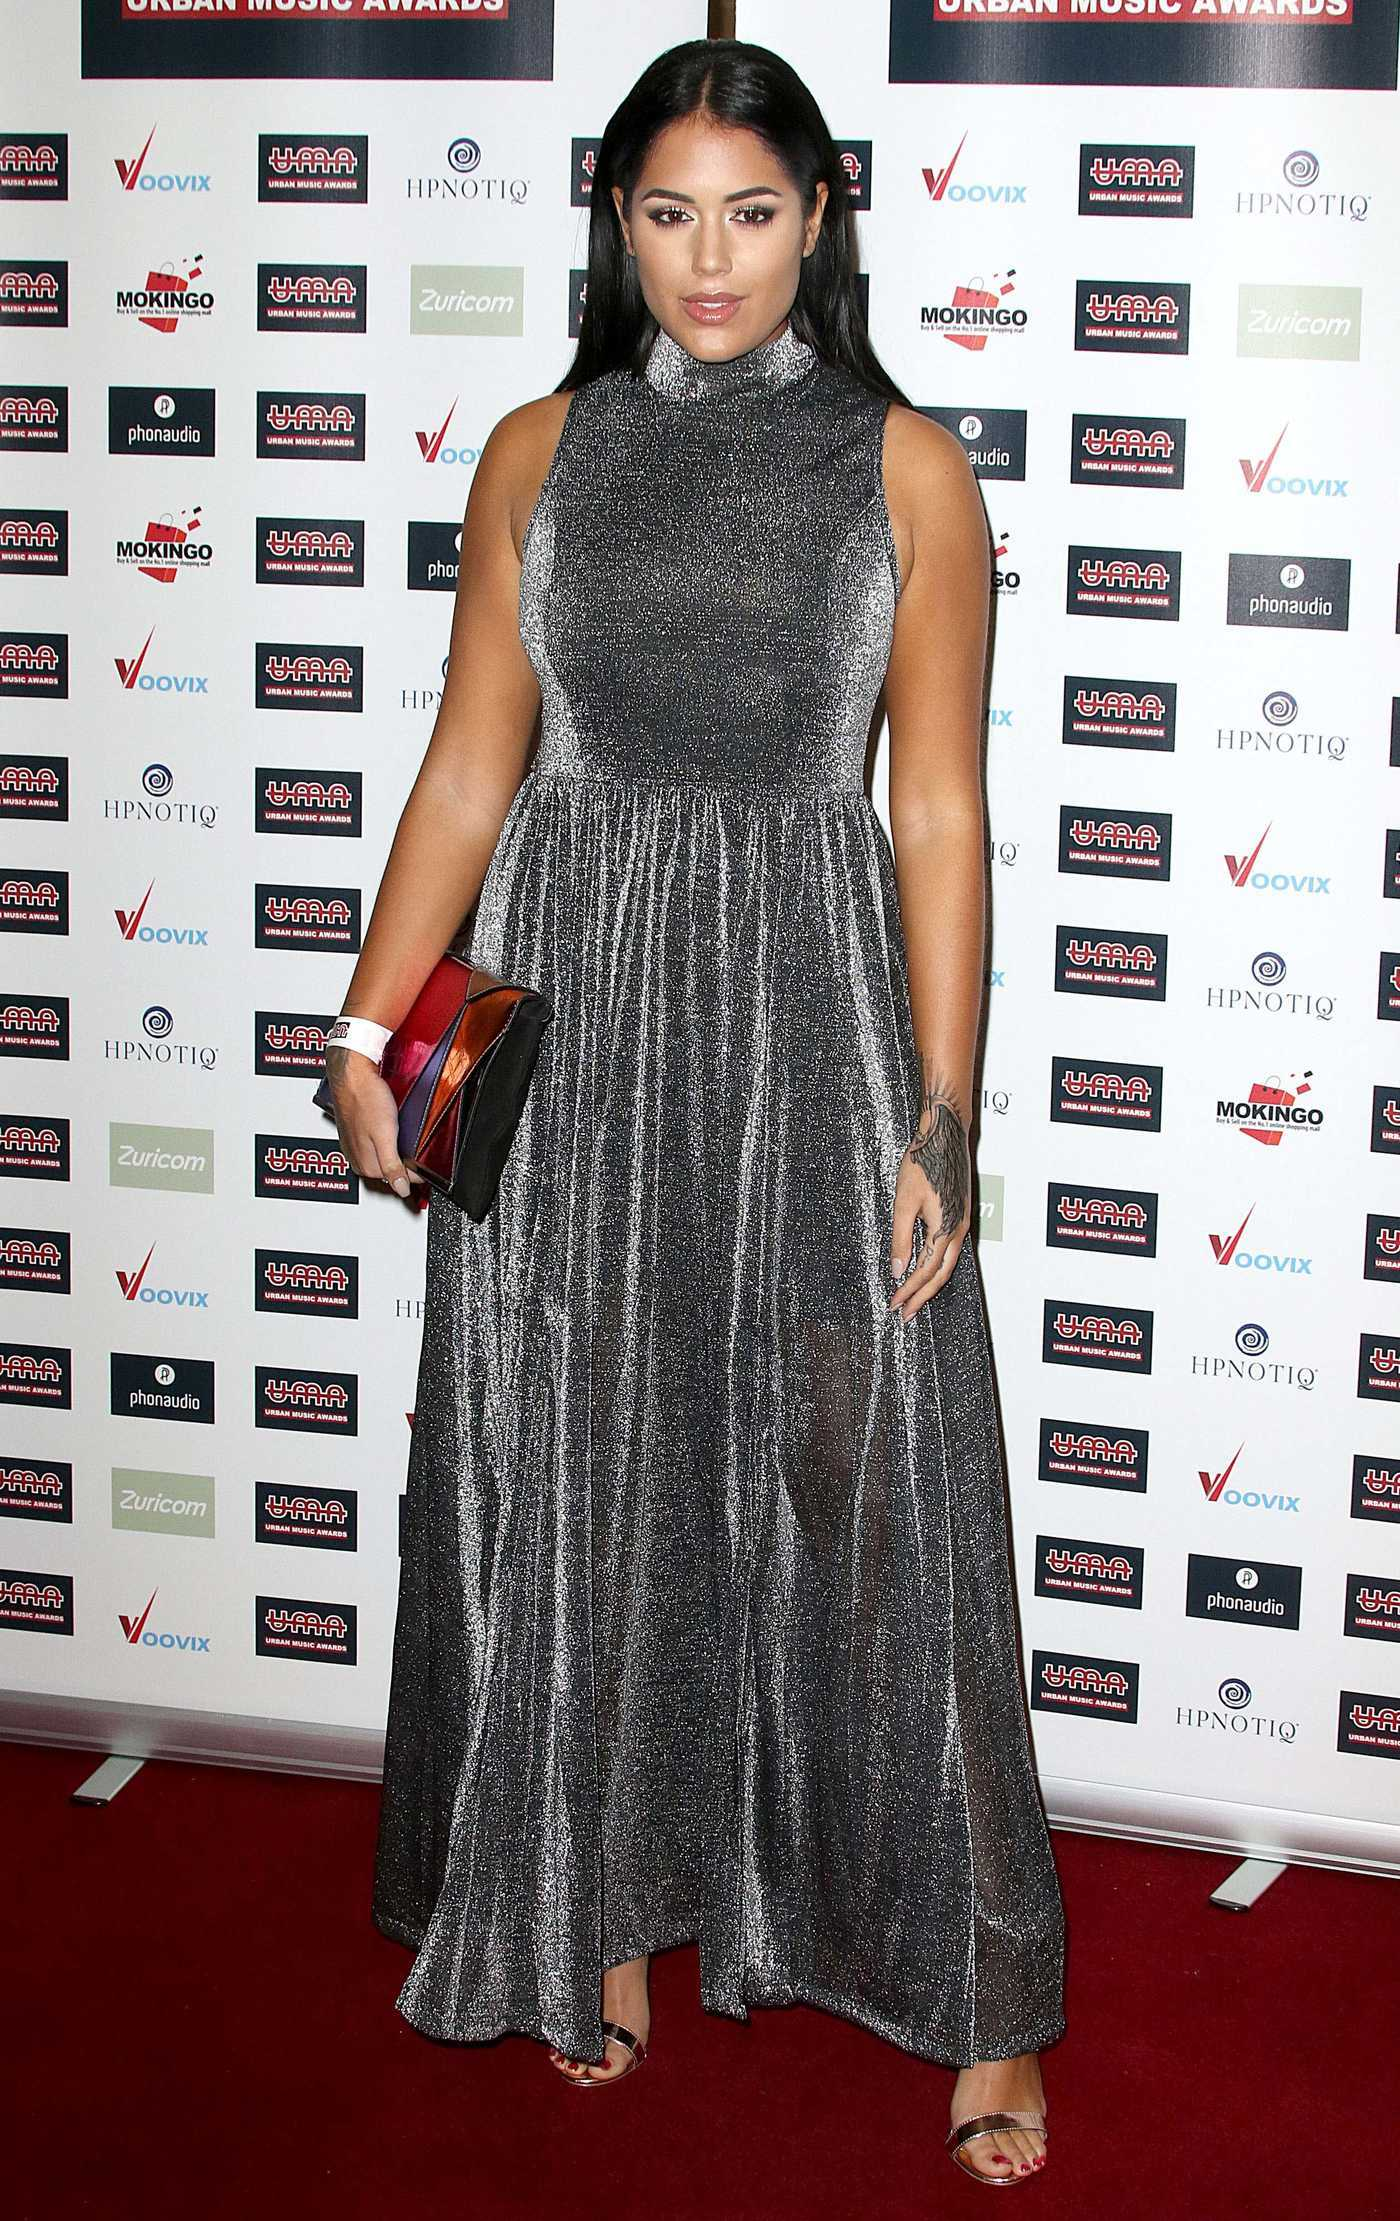 Malin Andersson at the 2016 Urban Music Awards in London 11/26/2016